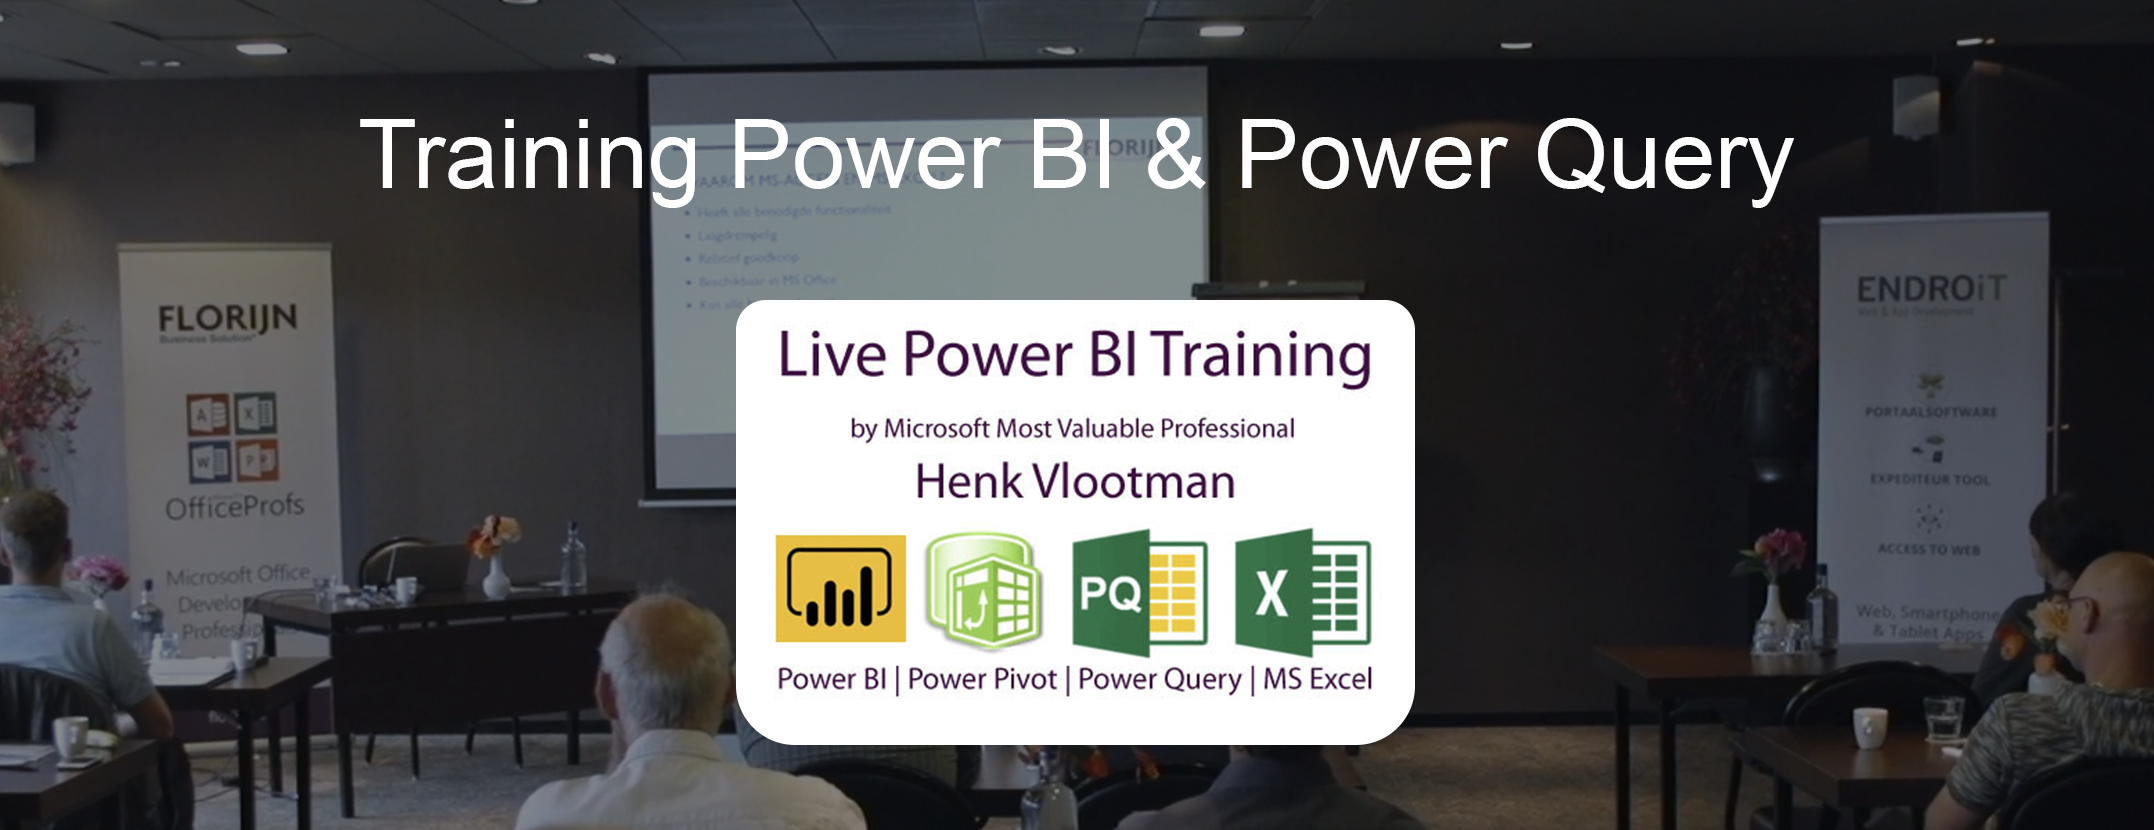 Training Power BI & Power Query